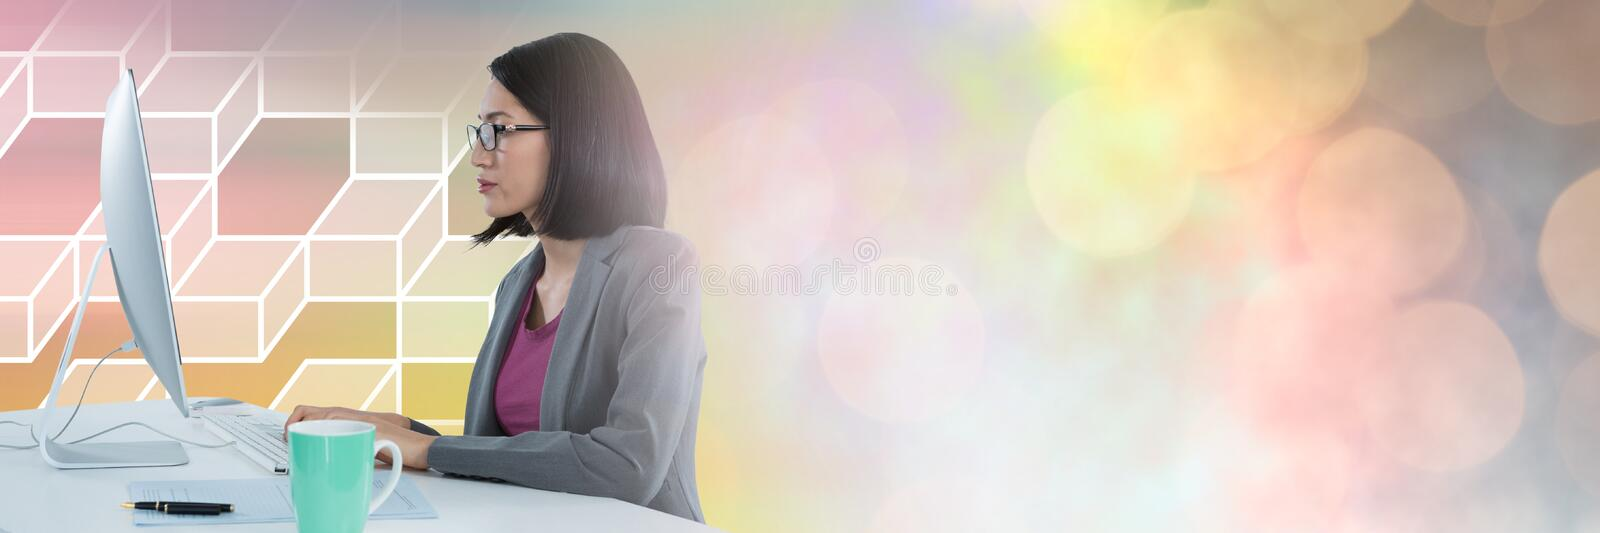 Woman using computer with geometric transitions royalty free stock photography